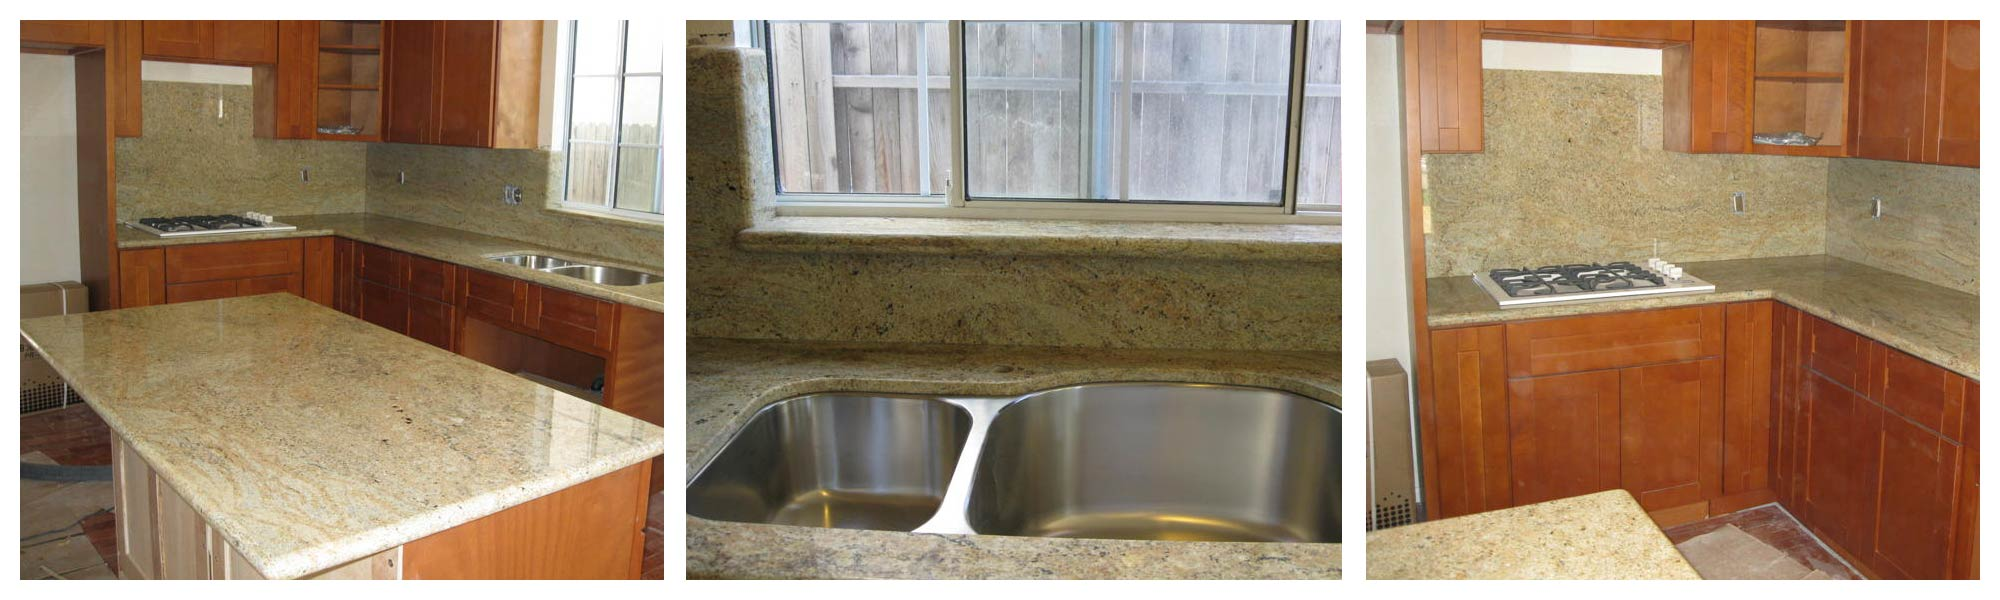 Sacramento Granite and Tile, Kitchen Cabinet; Granite and Tile. Tile and Stone, Granite